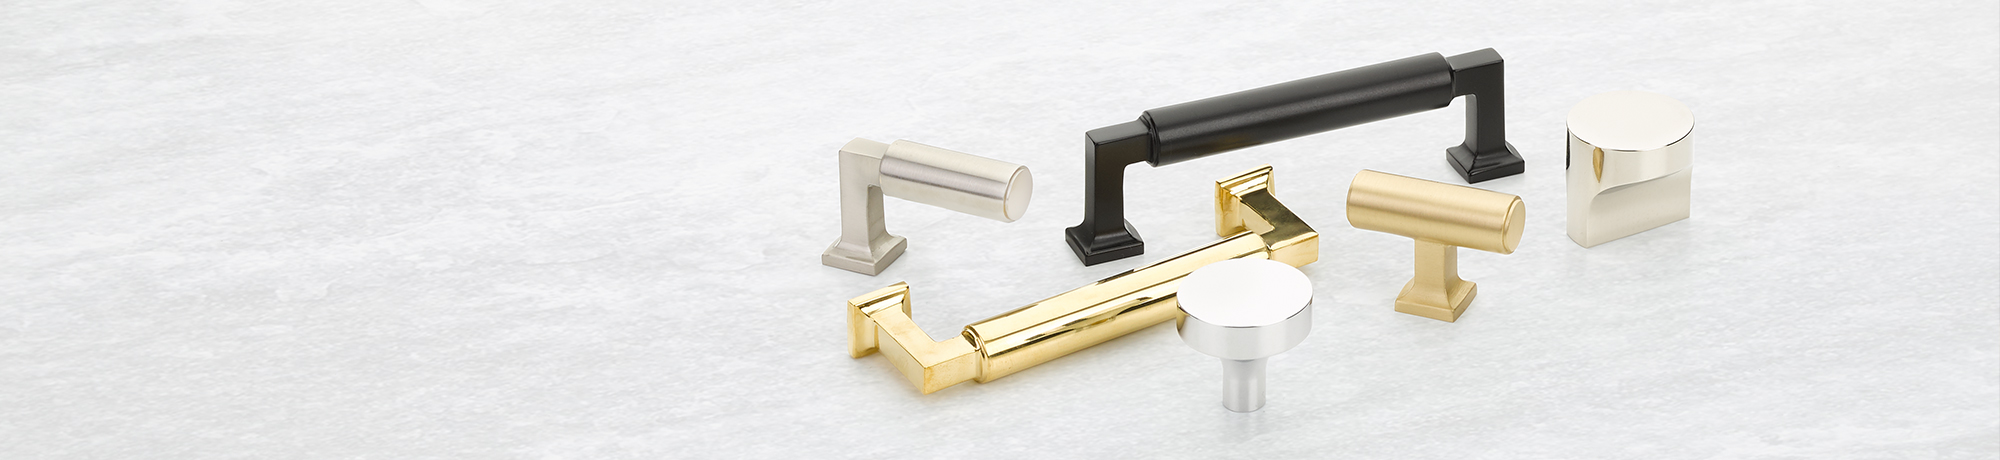 Kitchen Cabinet Hardware Manufacturers Kitchen Cabinet Hardware Knobs And Pulls Schaub And Company